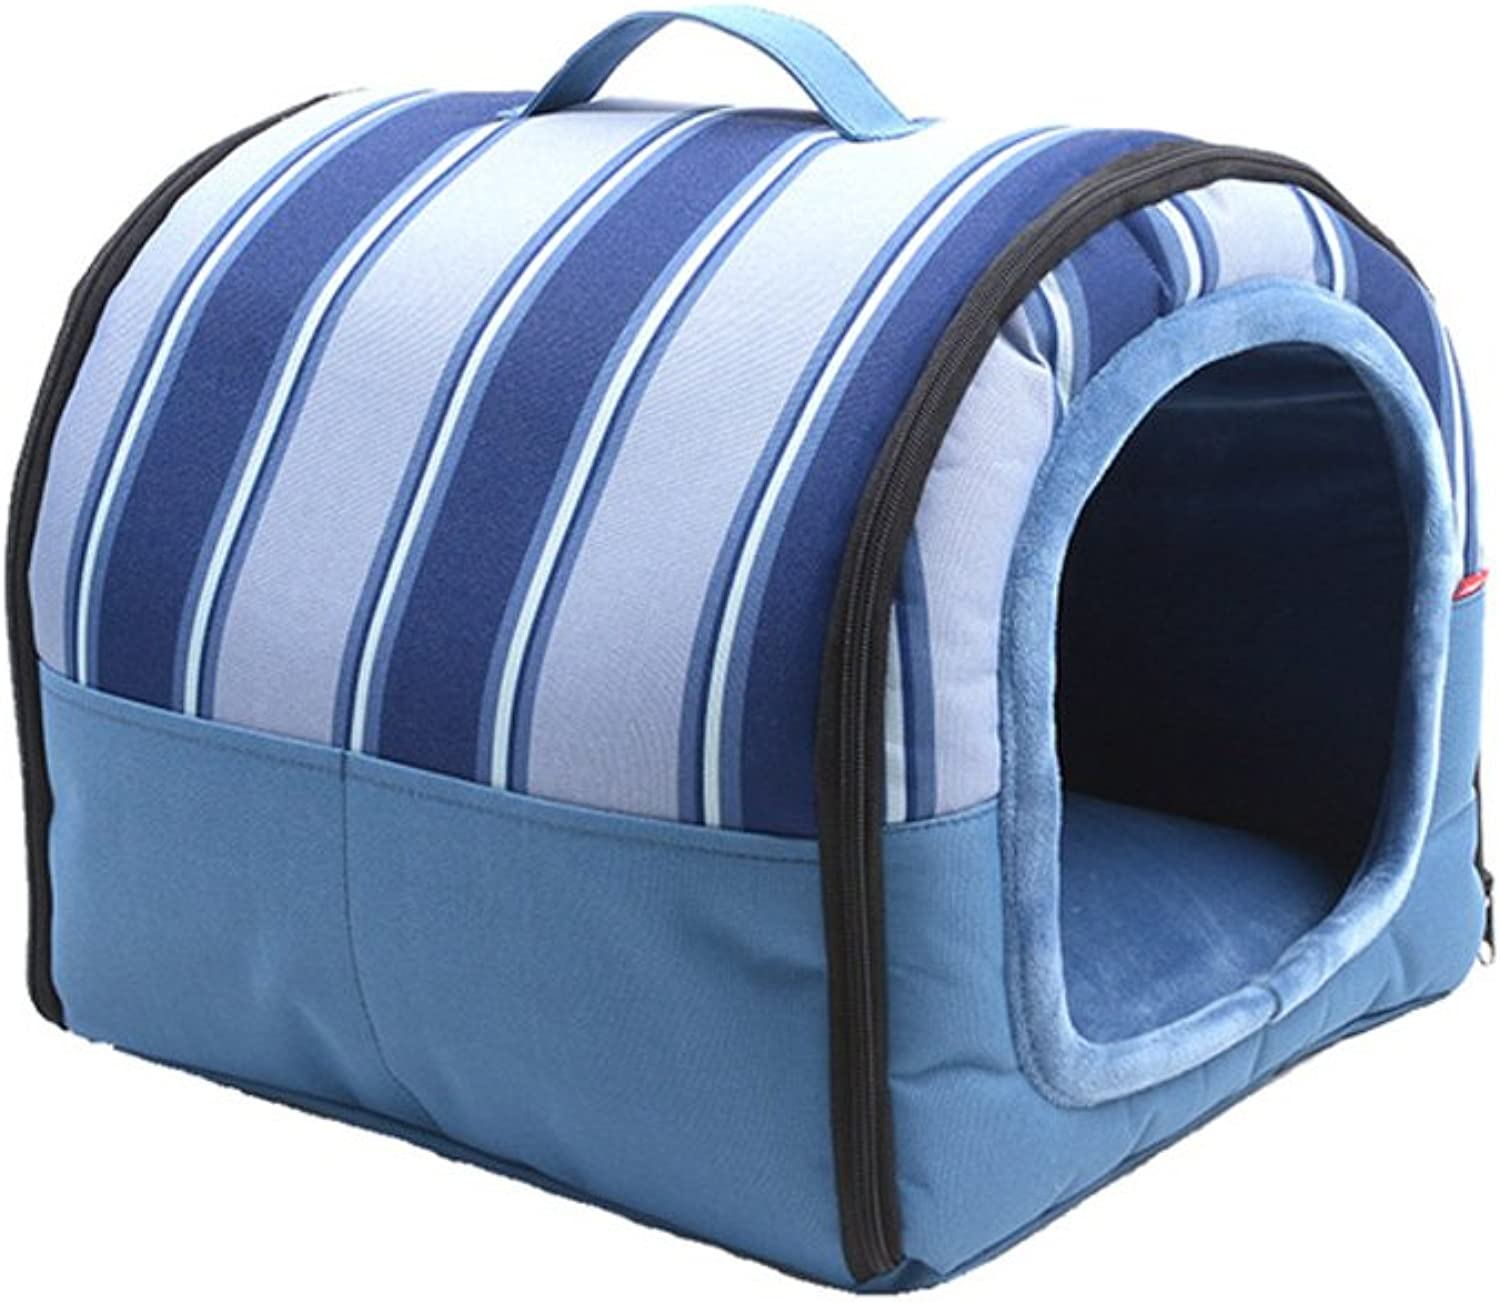 CHONGWFS Variety Of Pet Waterproof Oxford Cloth Kennel Four Seasons Universal Portable Dog House Large Medium Small Pet Supplies (Size   Medium)